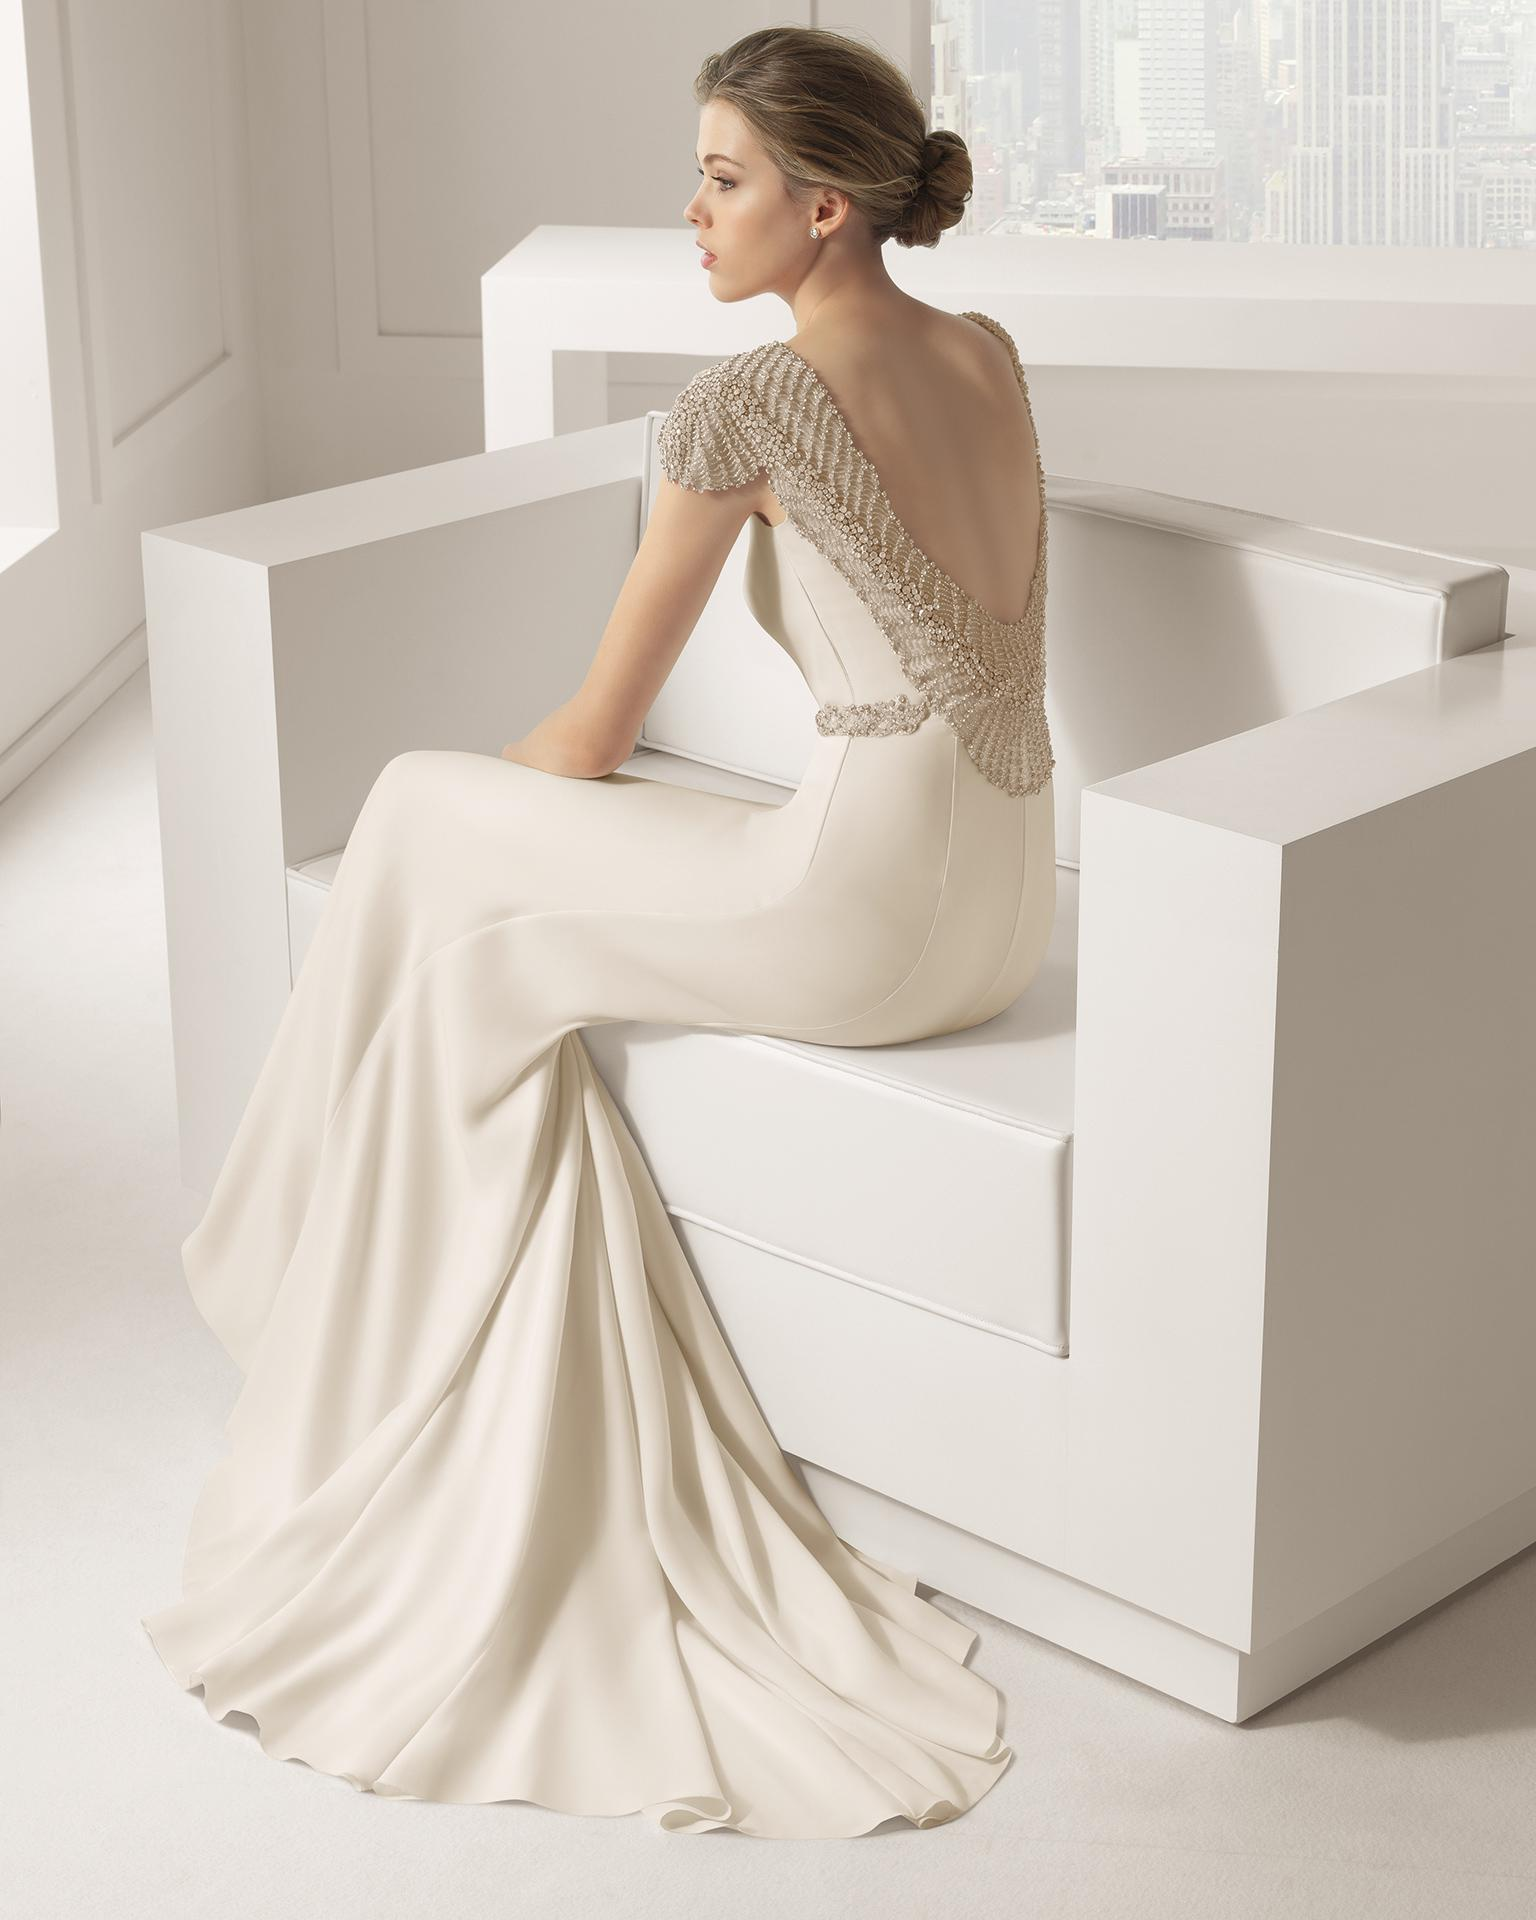 Crepe Wedding Gown: 2015 Ivory Crepe Wedding Dress Sequins Sheath Simple